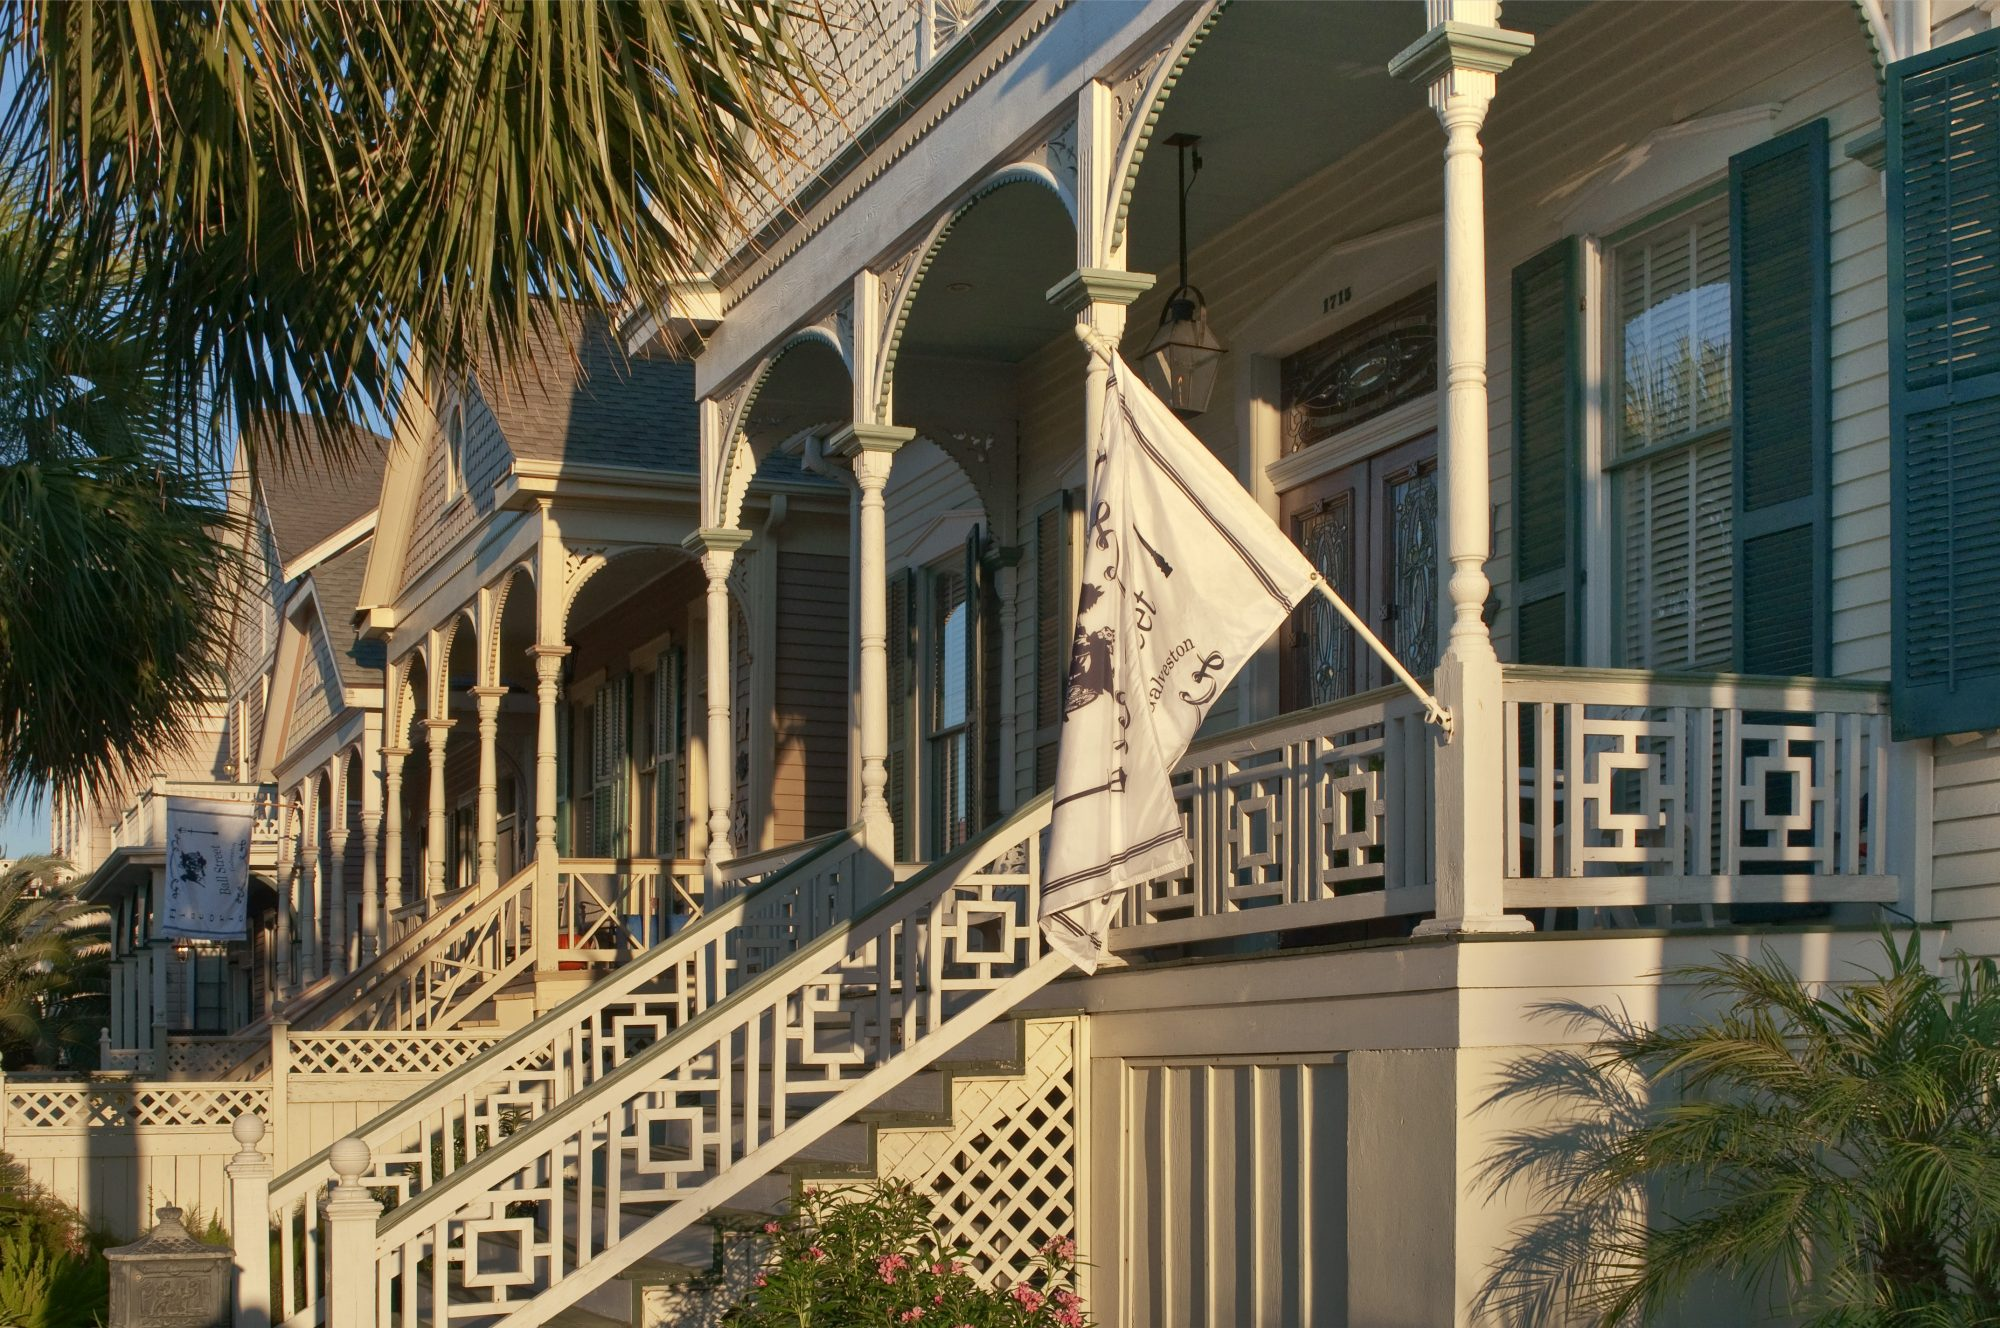 Strung along a narrow barrier island on the Gulf of Mexico, Galveston is a beautiful blend of graceful Victorian and early 20th-century mansions, bungalows, and cottages, along with a stunning historic downtown lined with tall palm trees and shady live oaks.